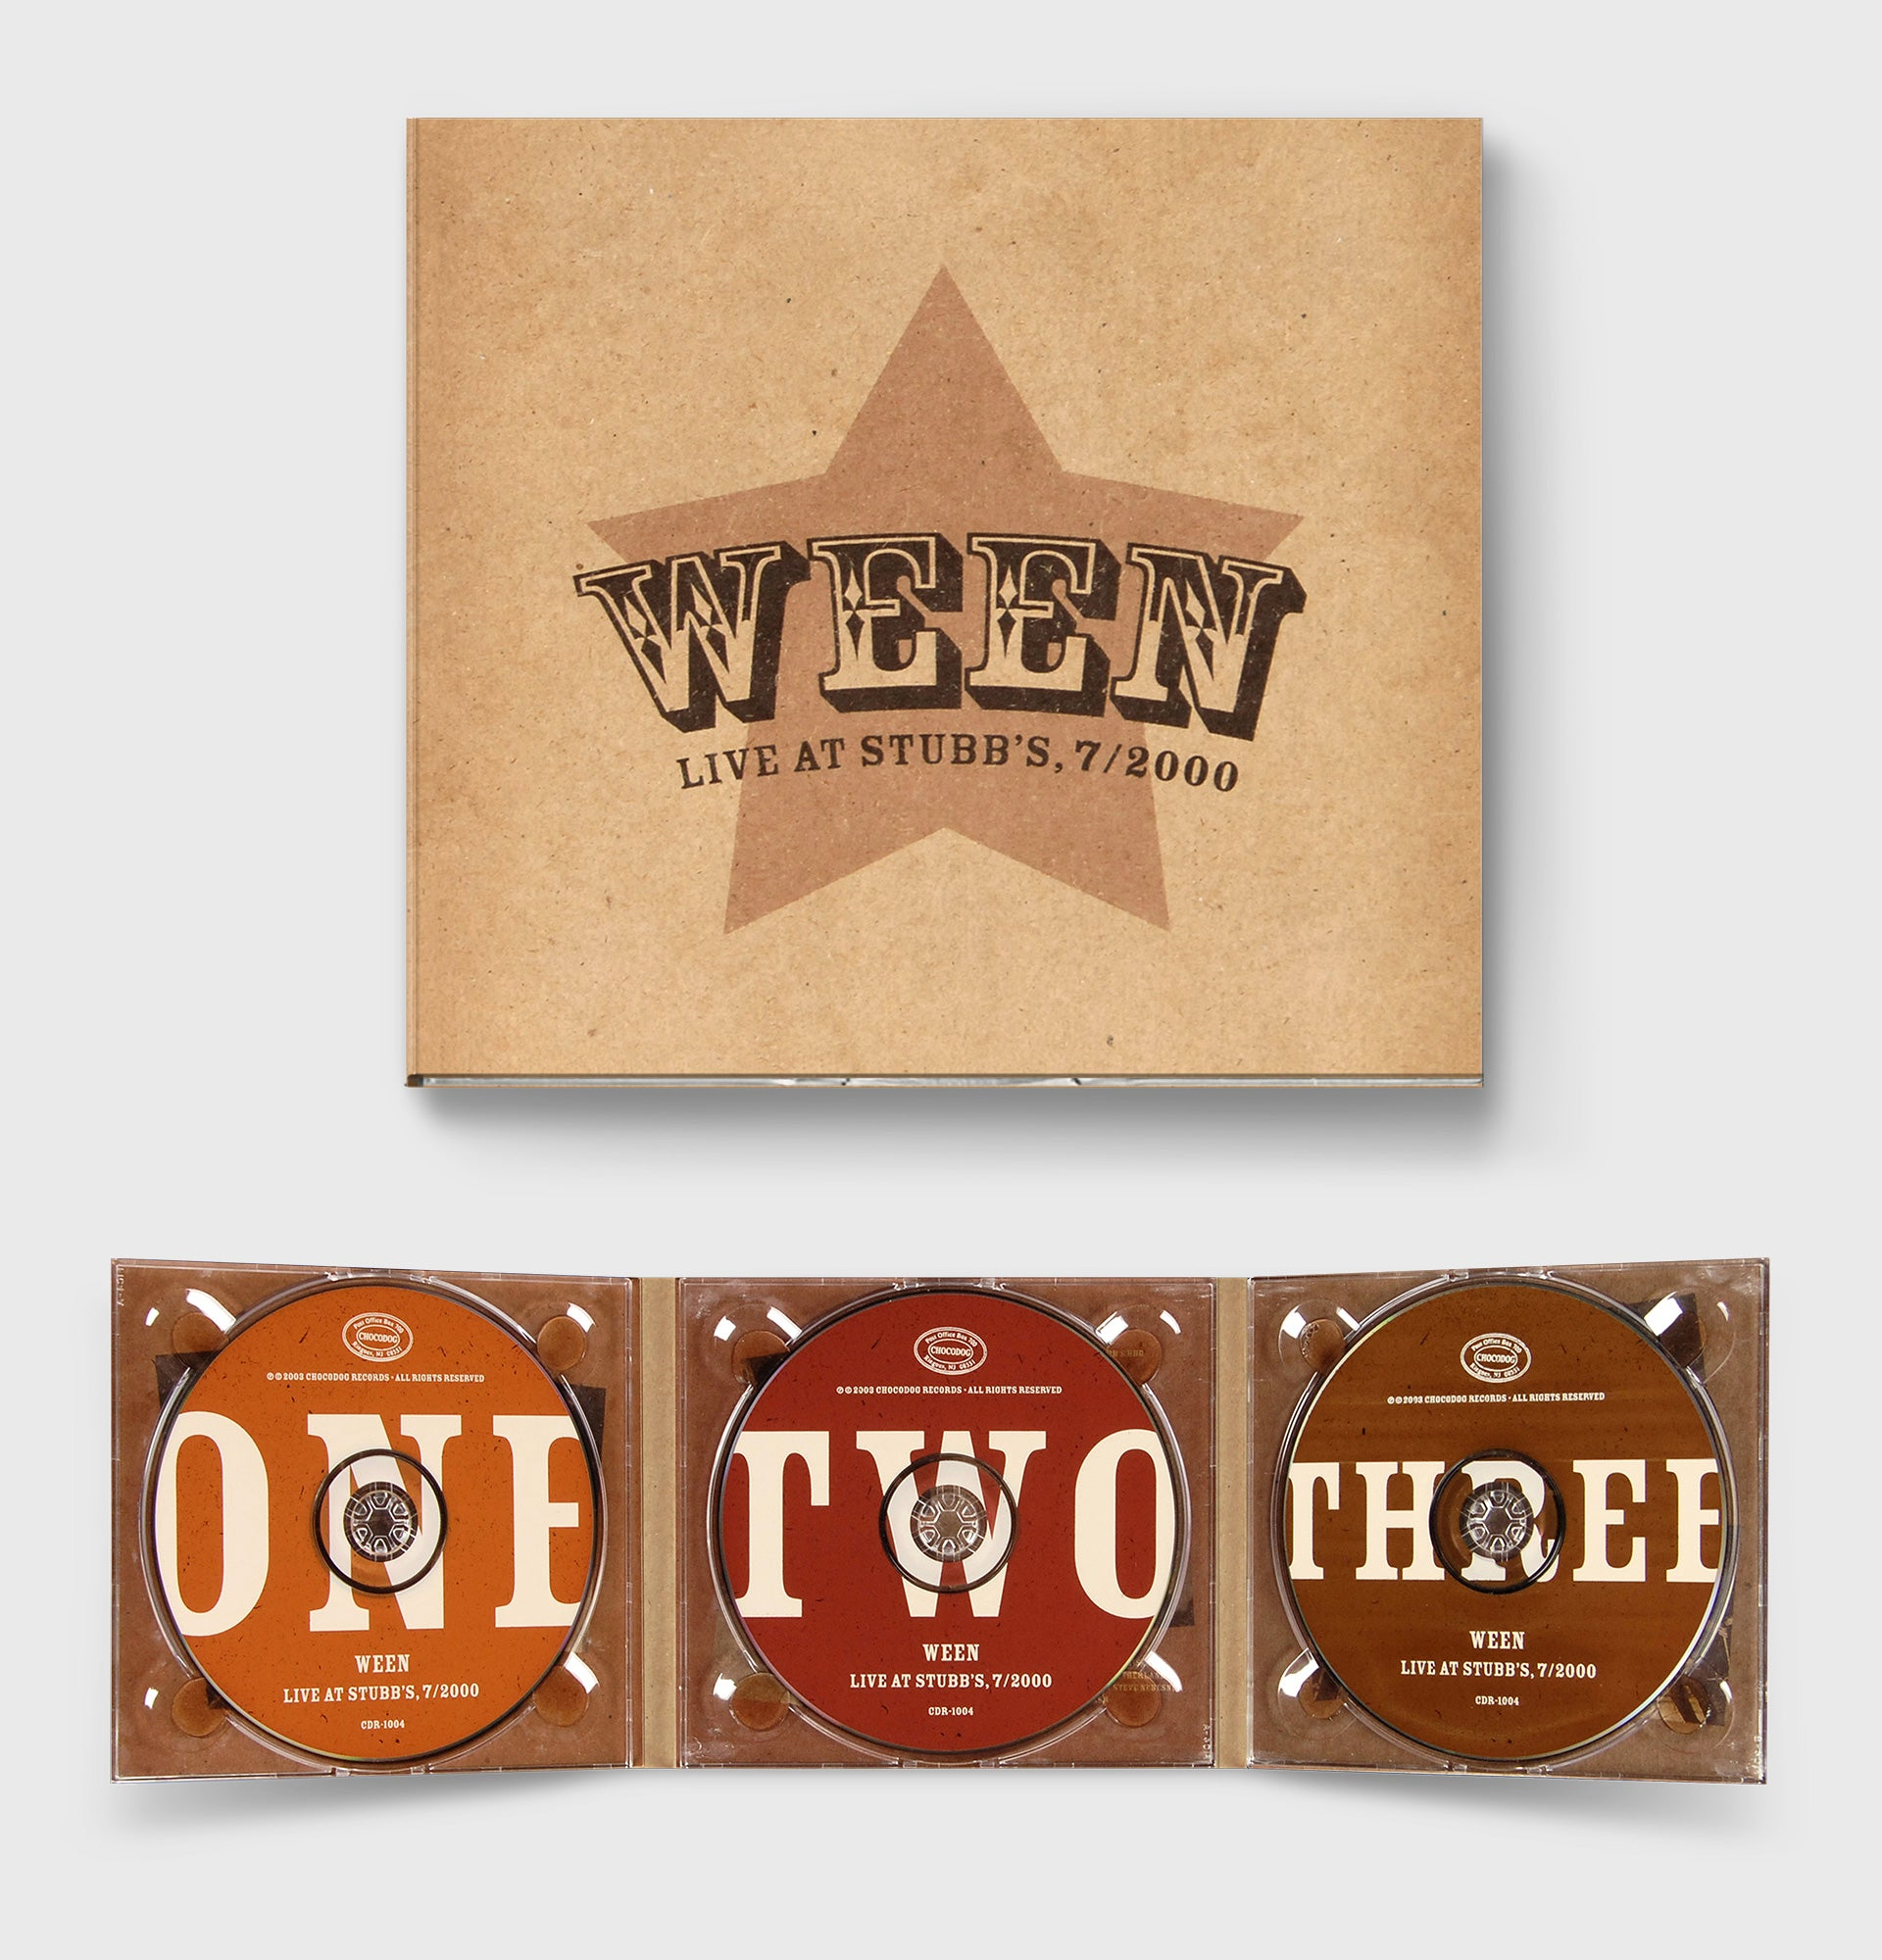 Ween 'Live at Stubb's, 7/2000'